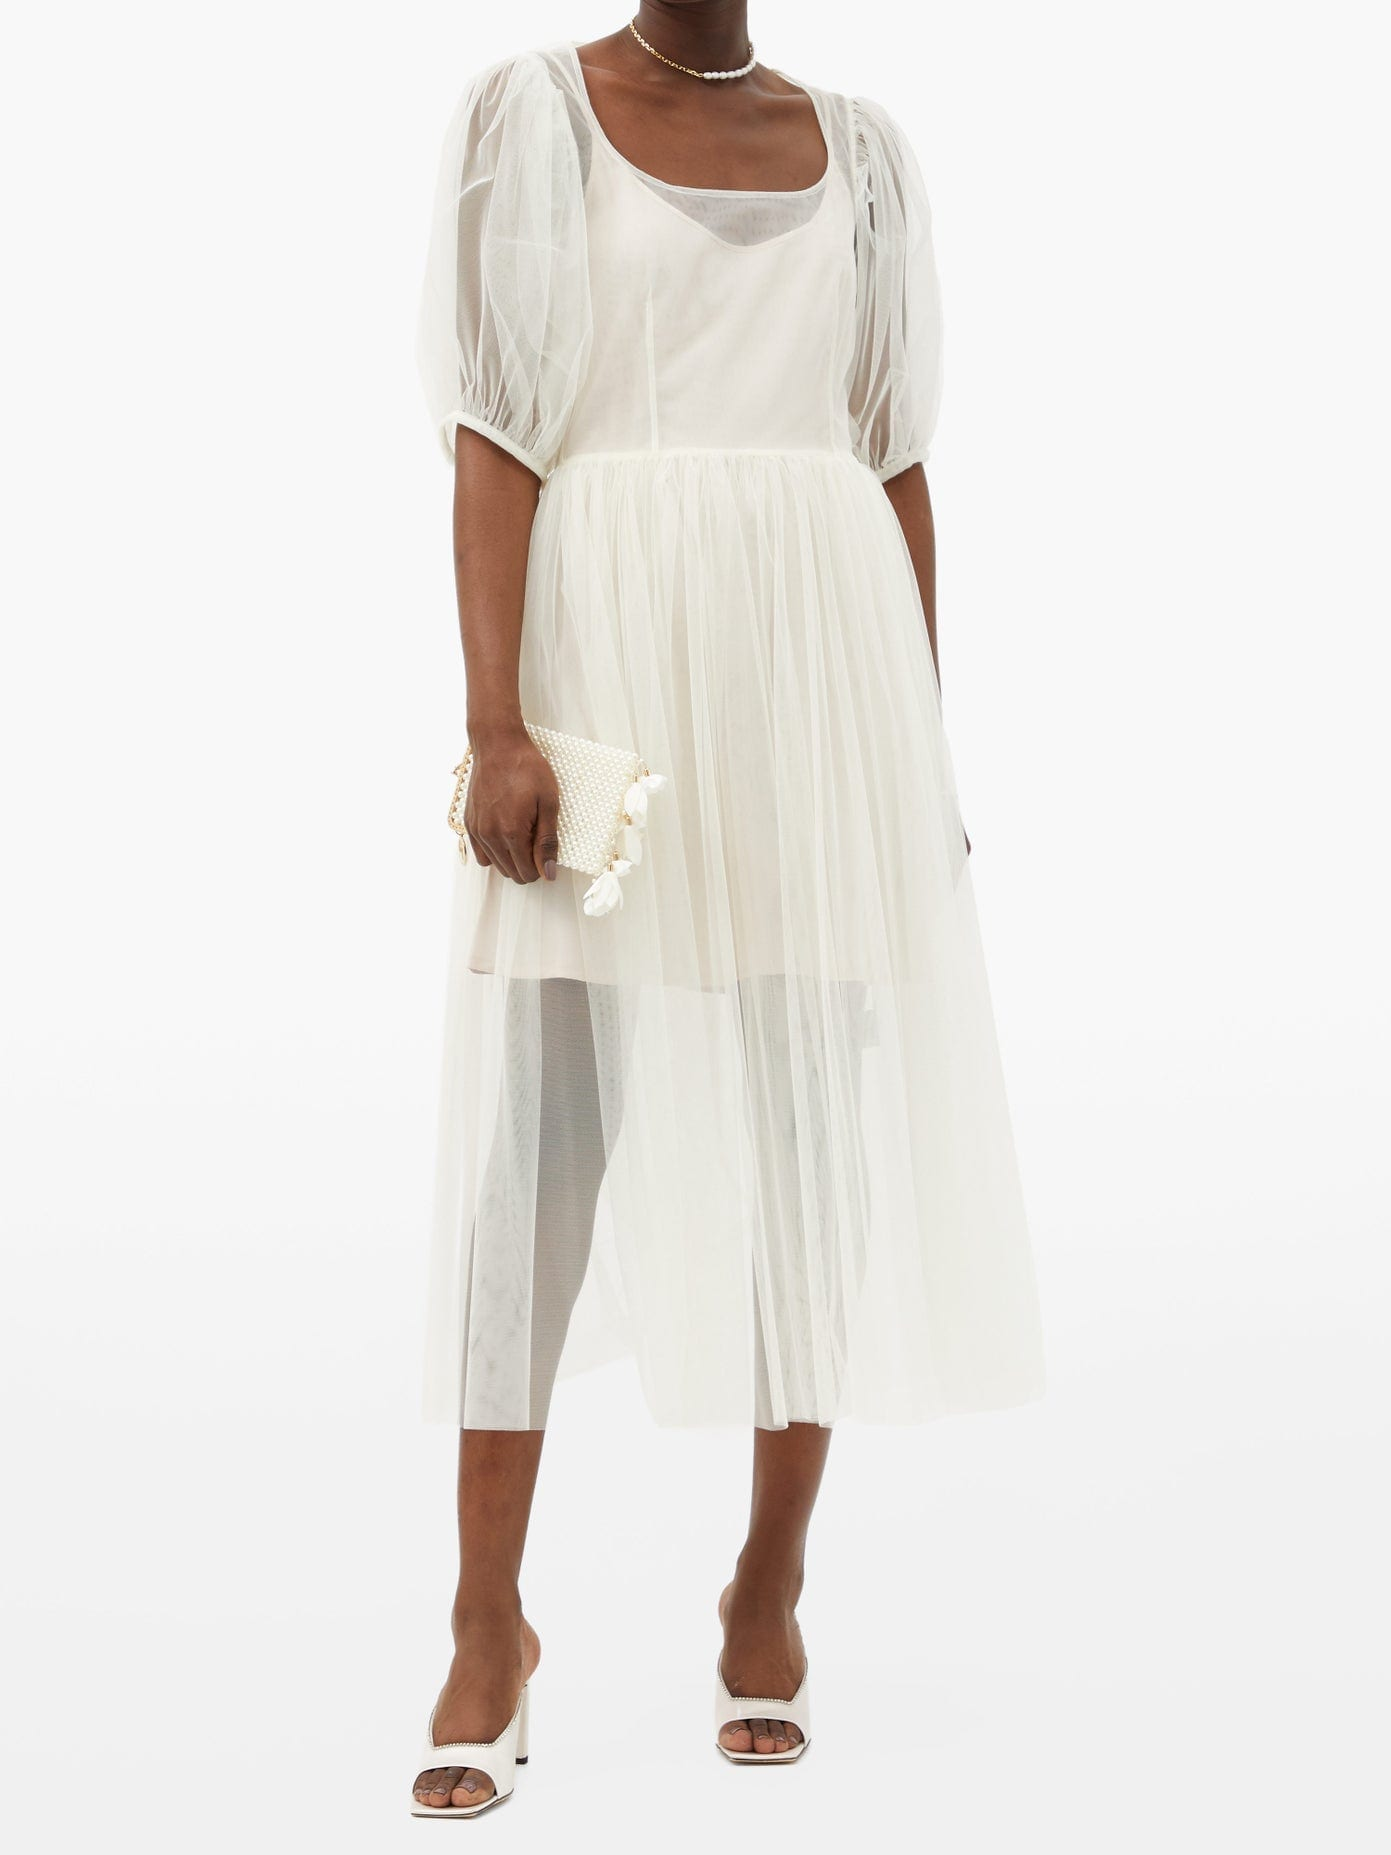 MOLLY GODDARD Gwyneth Puff-sleeved Tulle Midi Dress